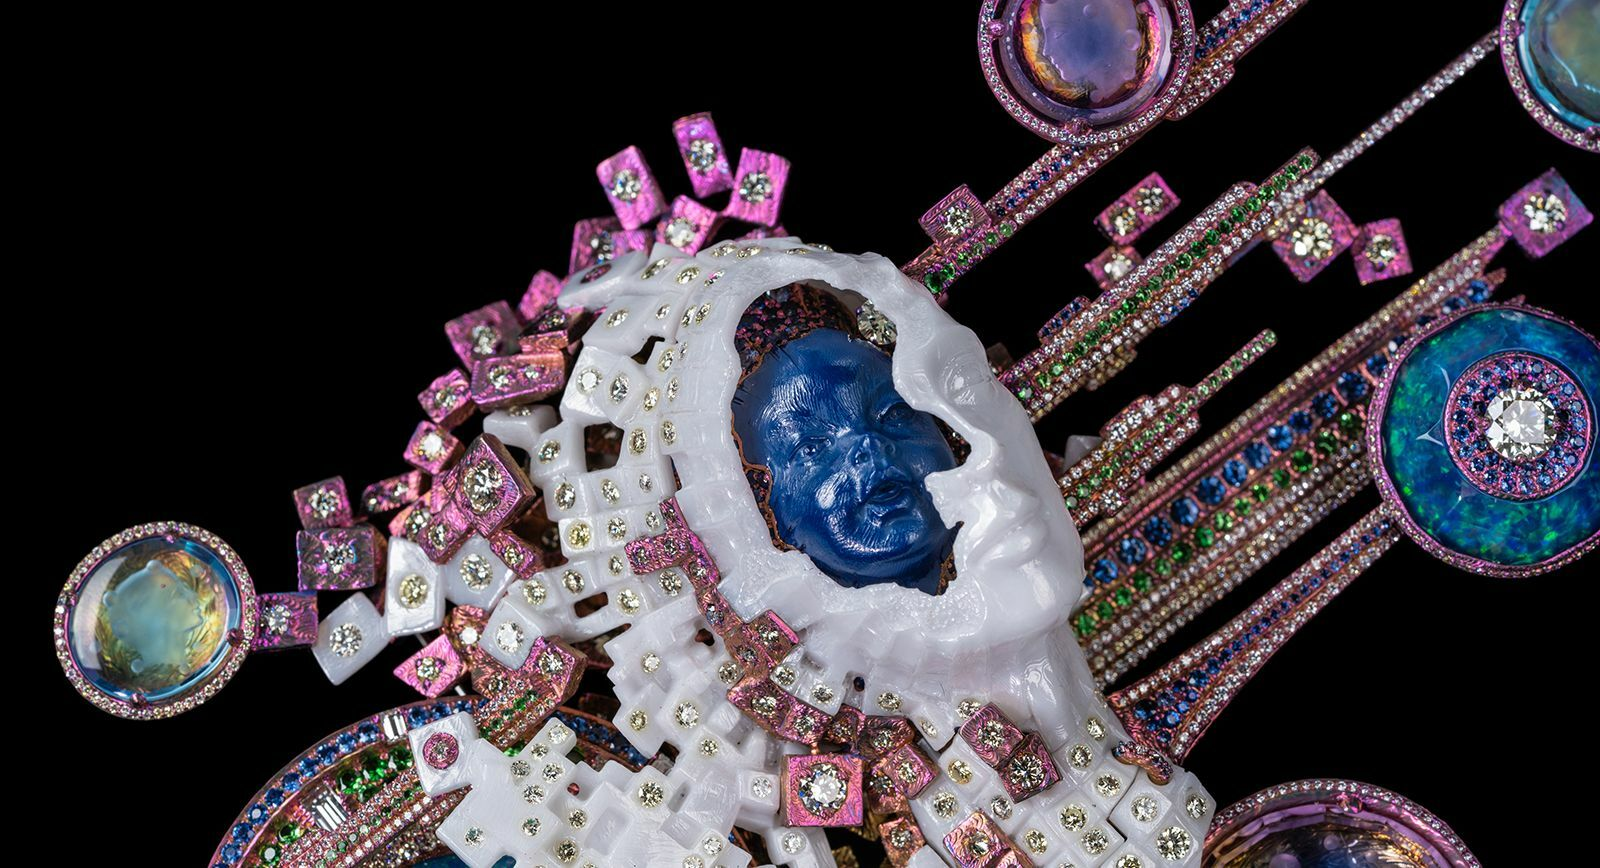 Wallace Chan jewellery for TEFAF Maastricht 2020